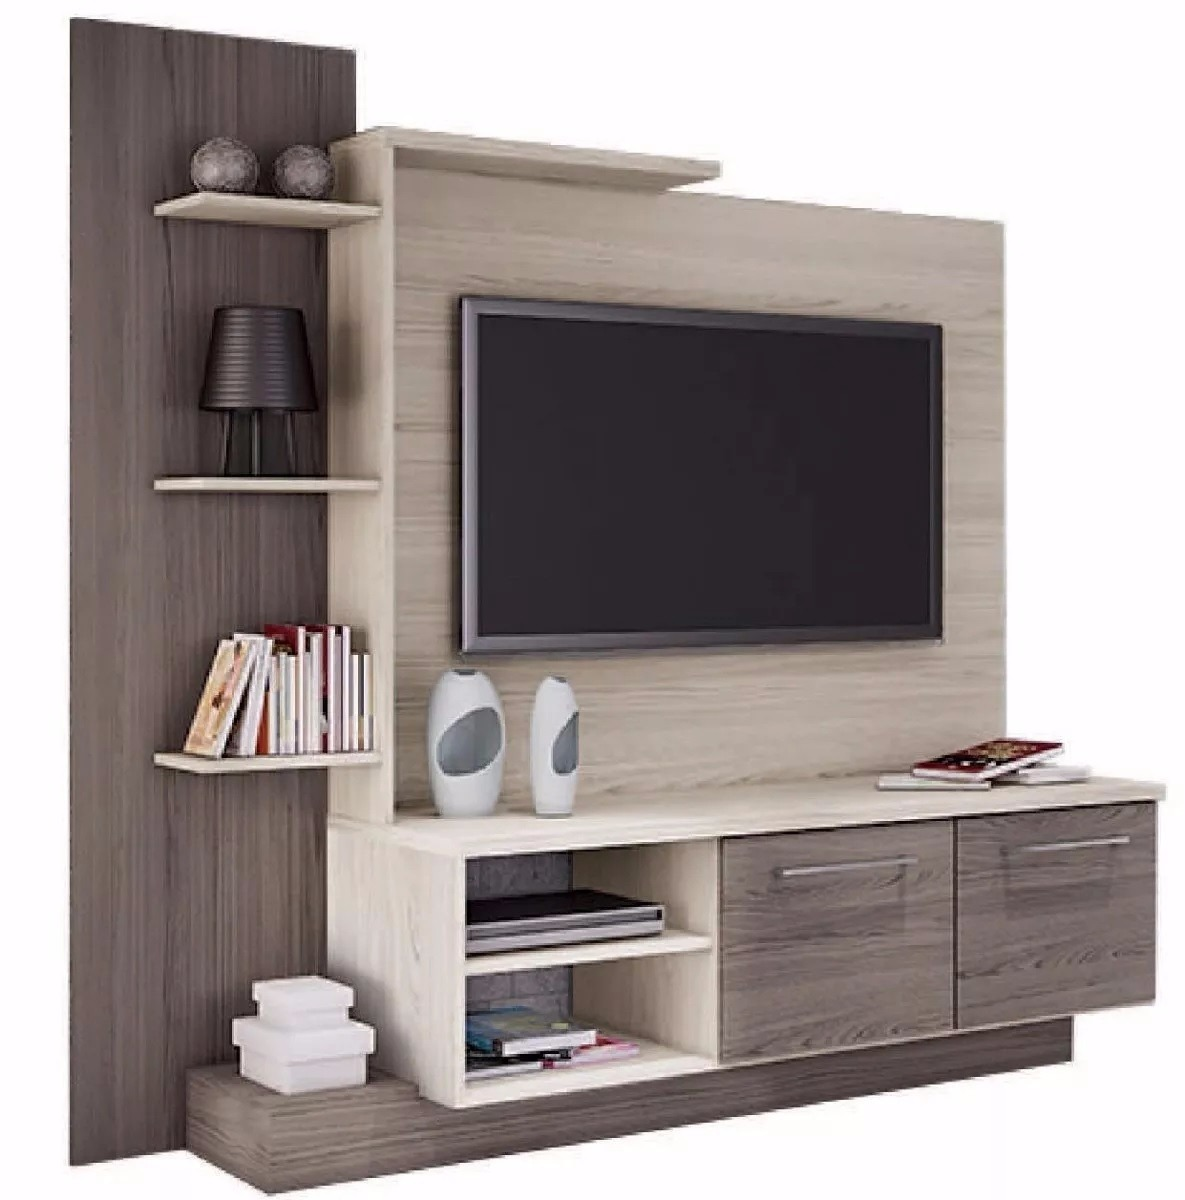 Rack tv mesa led lcd mueble de comedor modular home for Racks y modulares para living